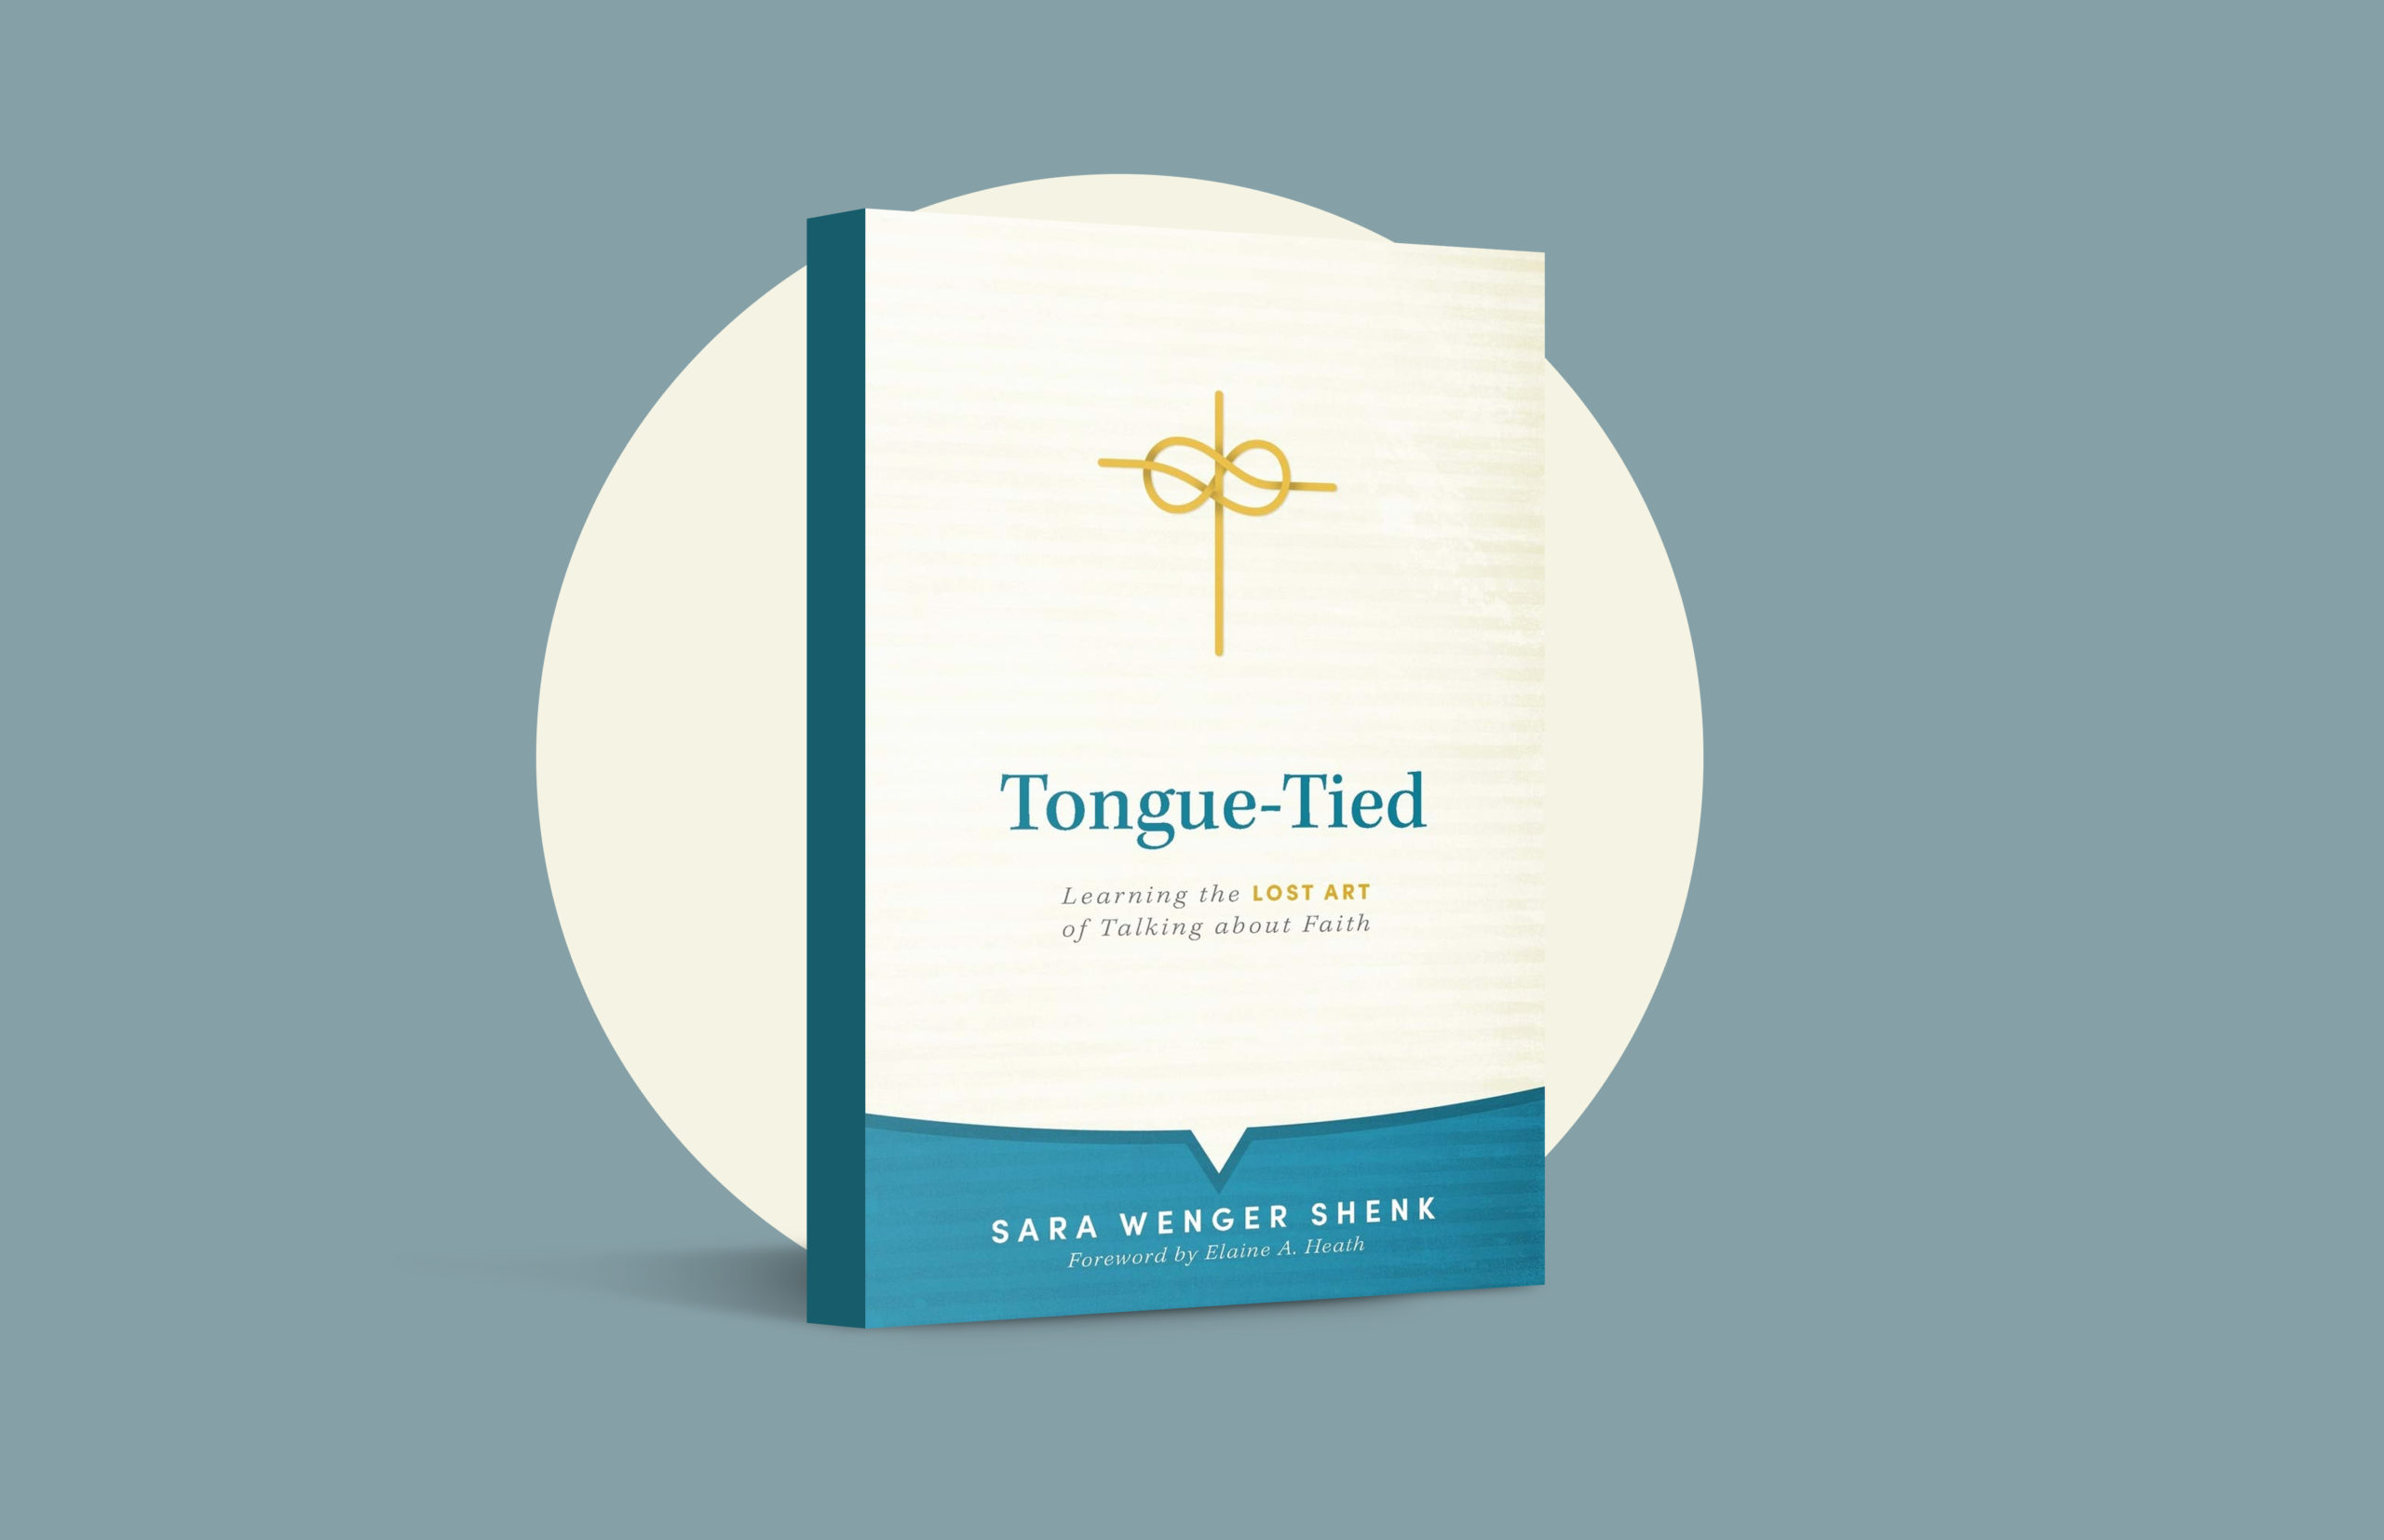 Tongue-Tied: Learning the Lost Art of Talking About Faith, by Sara Wenger Shenk